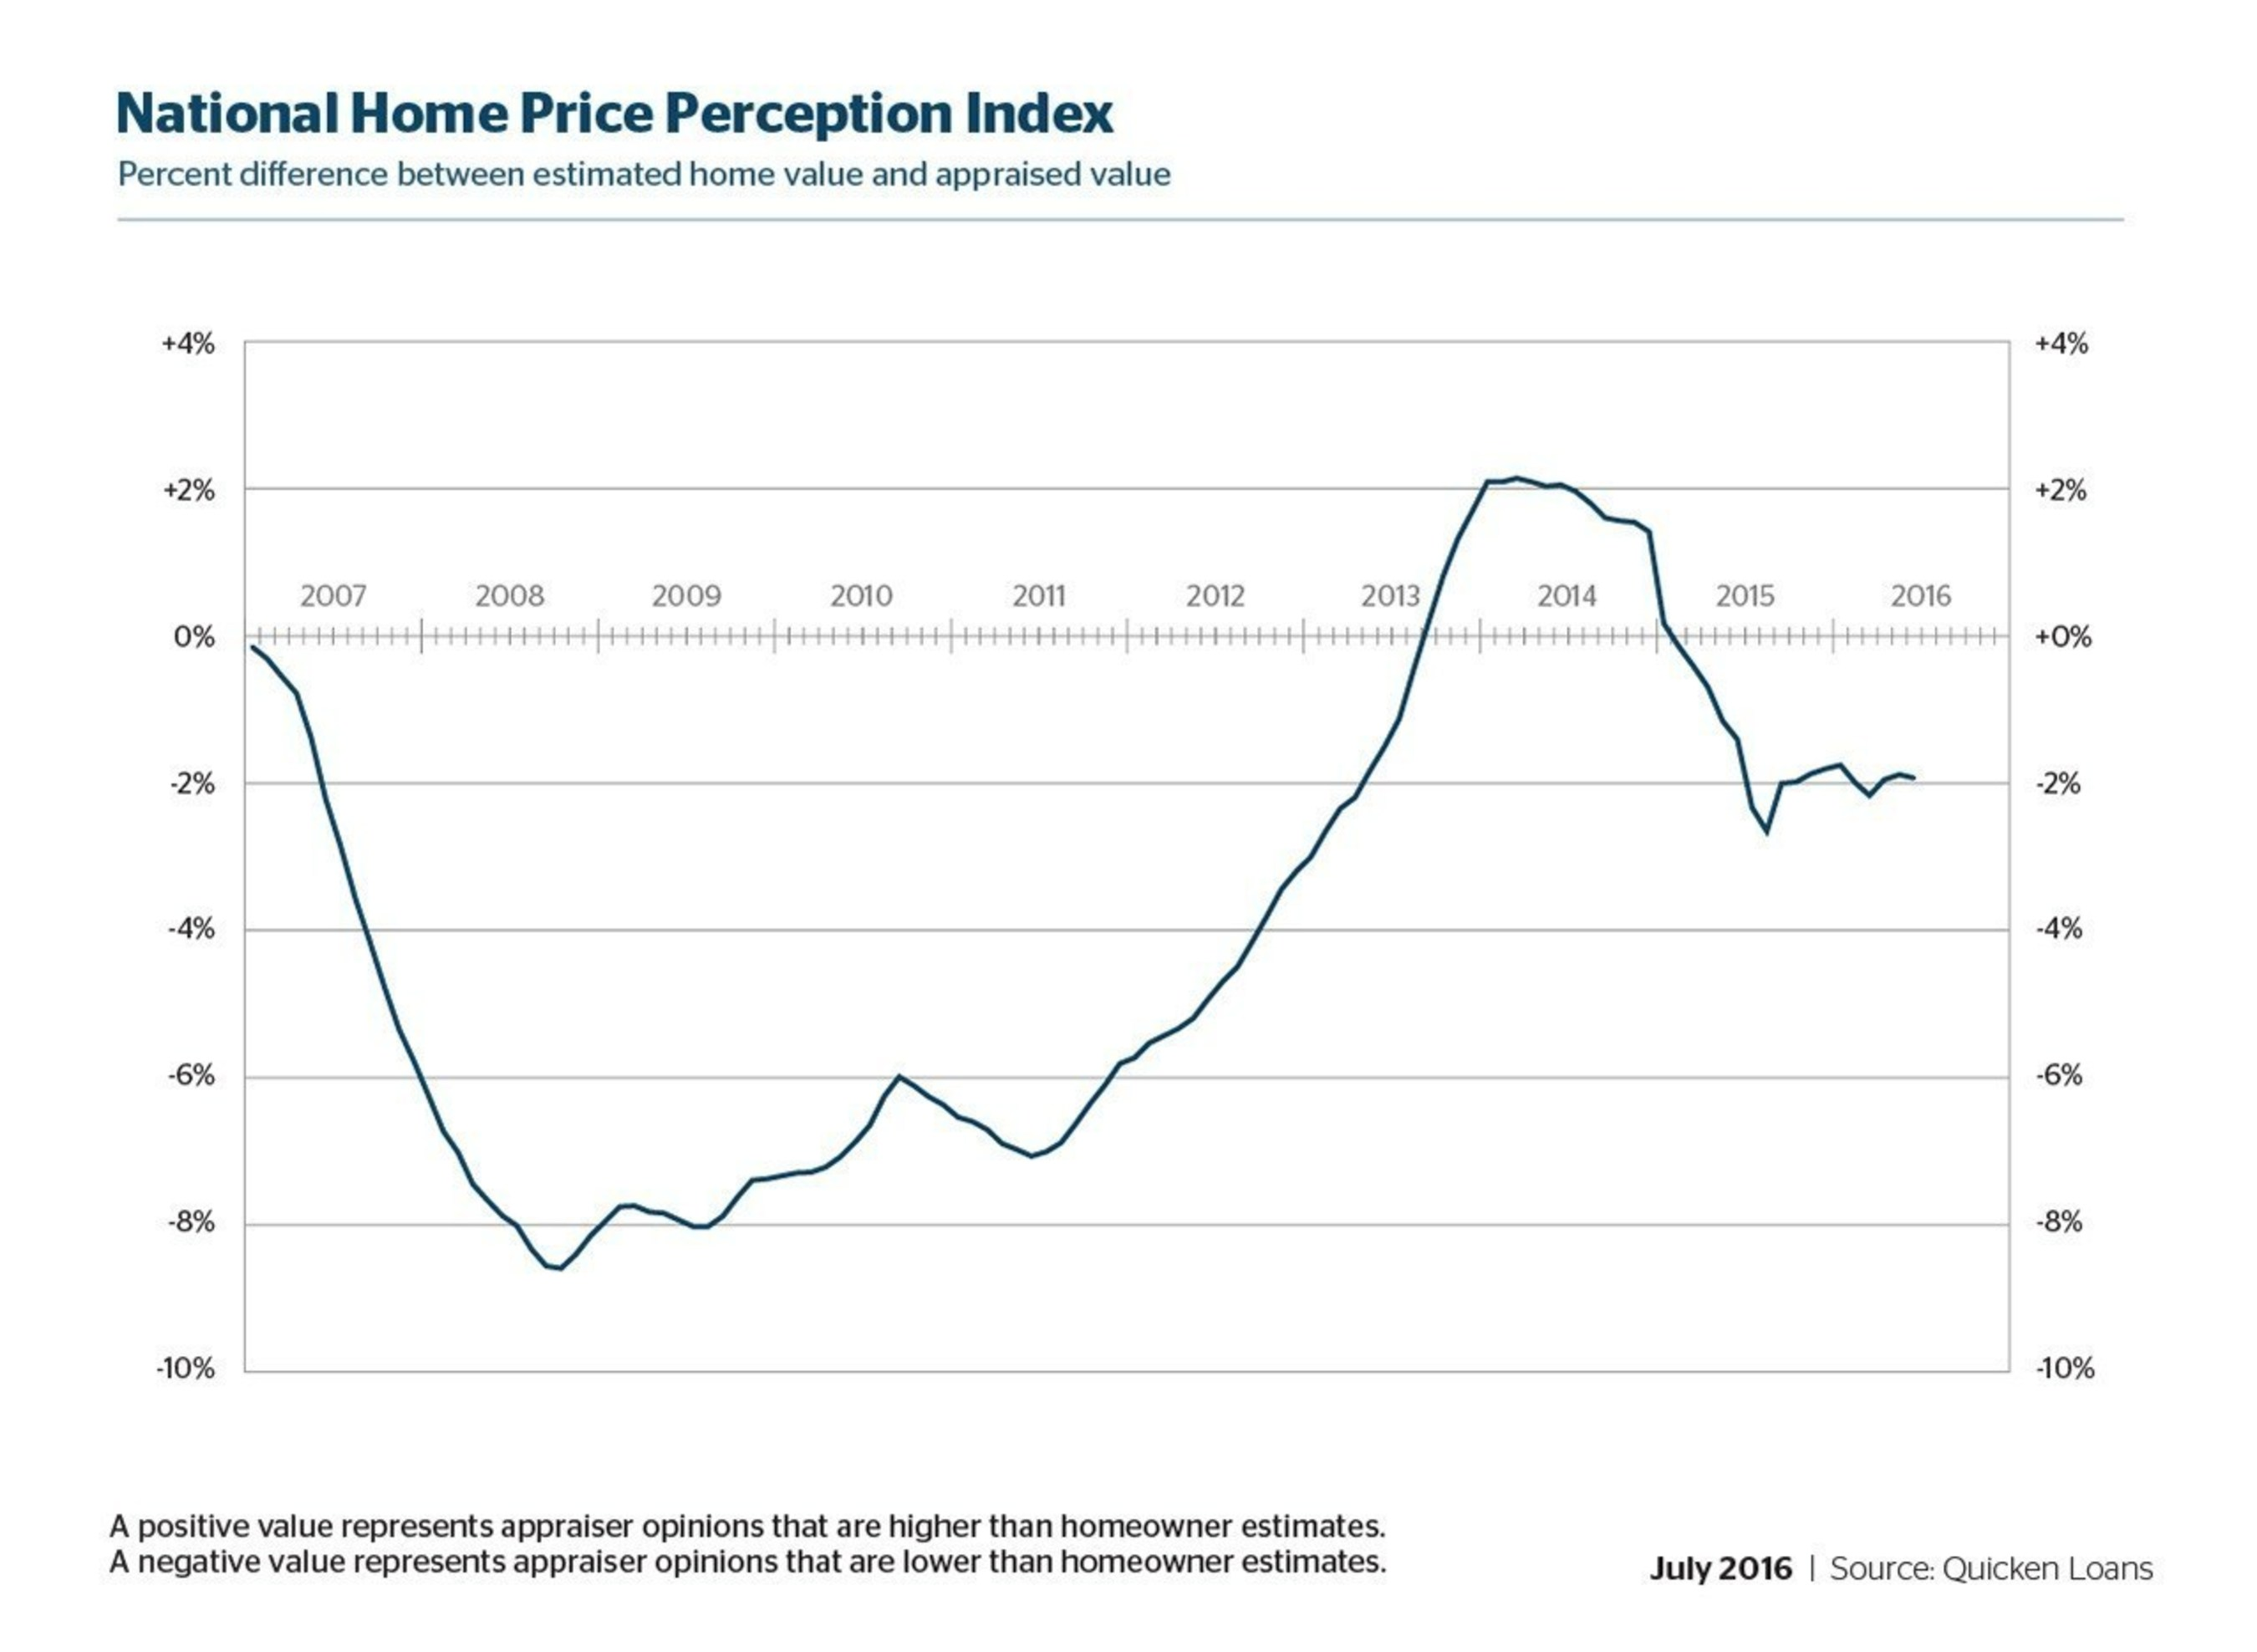 July 2016 Home Price Perception Index